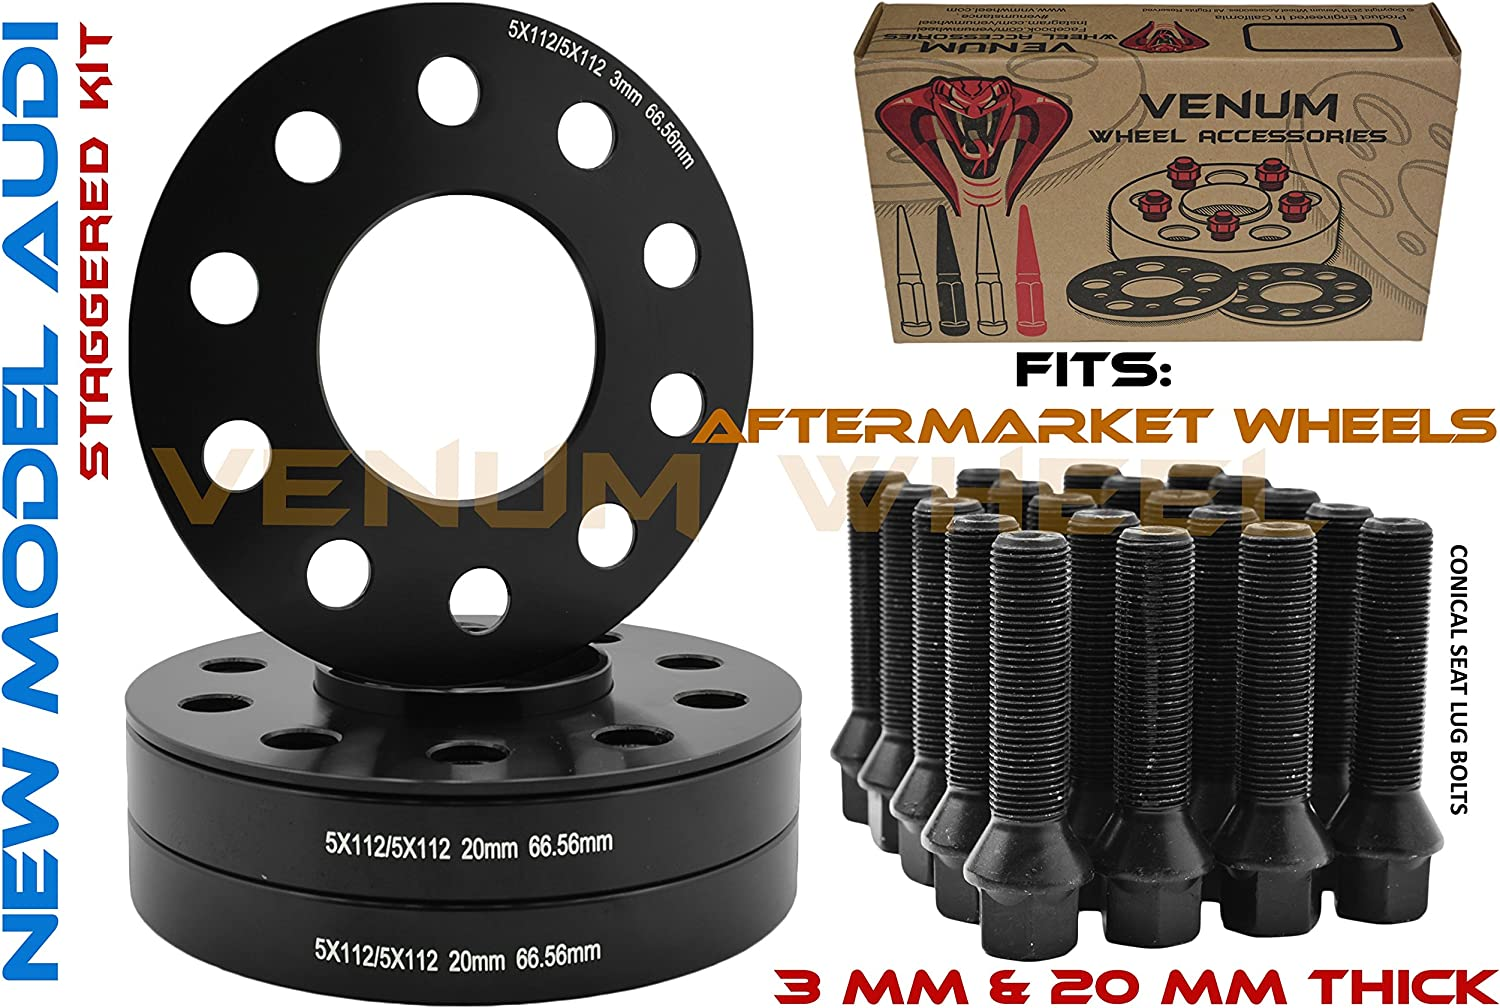 /Àudi S5 RS5 Wheel Spacers 1pr 20mm with Bolts and Locking Bolts for OEM Alloys